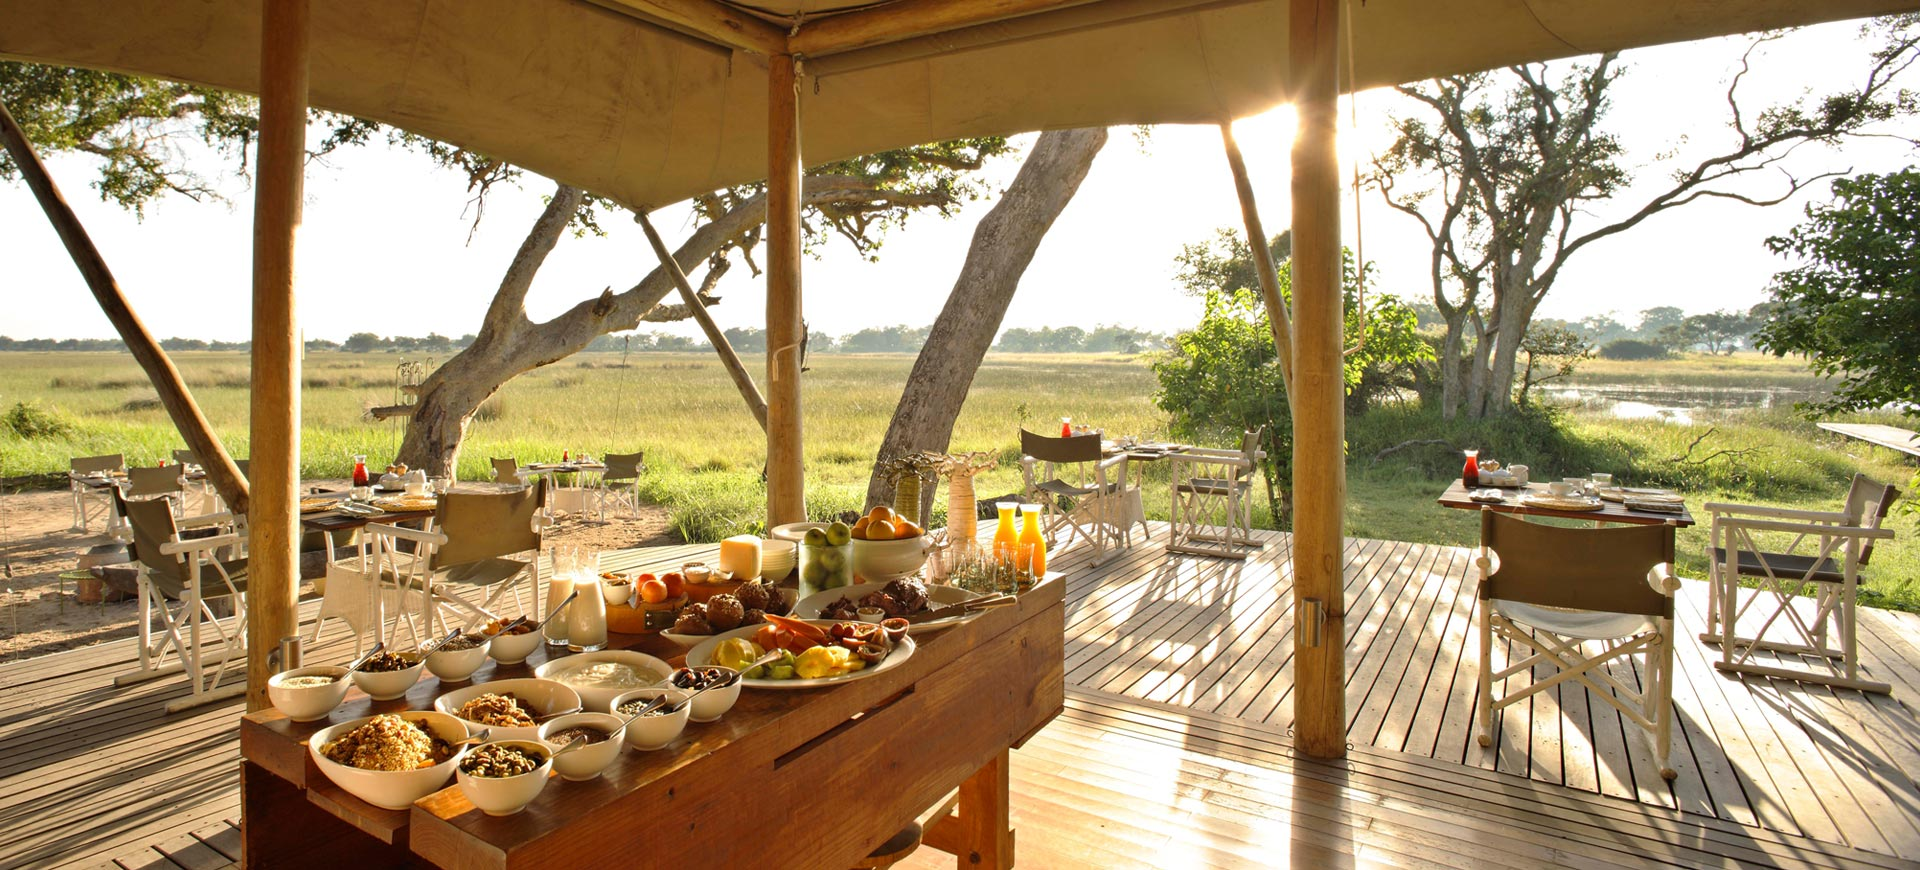 Xaranna Okavango Camp Breakfast